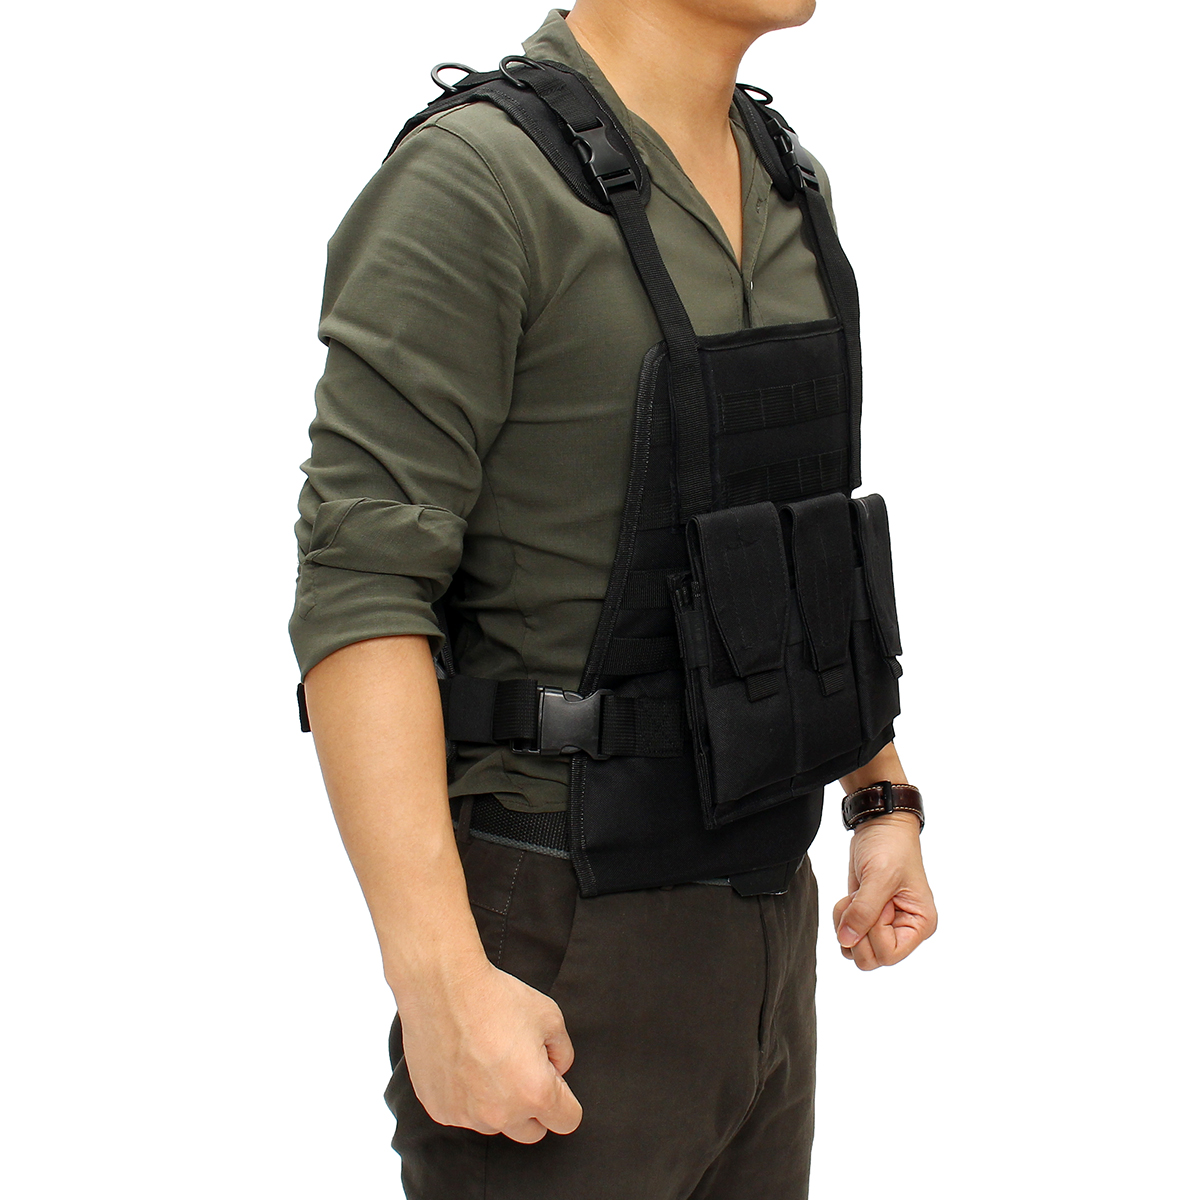 Outdoor Hunting Military Tactical Vest Body Armor Jungle Equipment Plate Carrier With Pouches